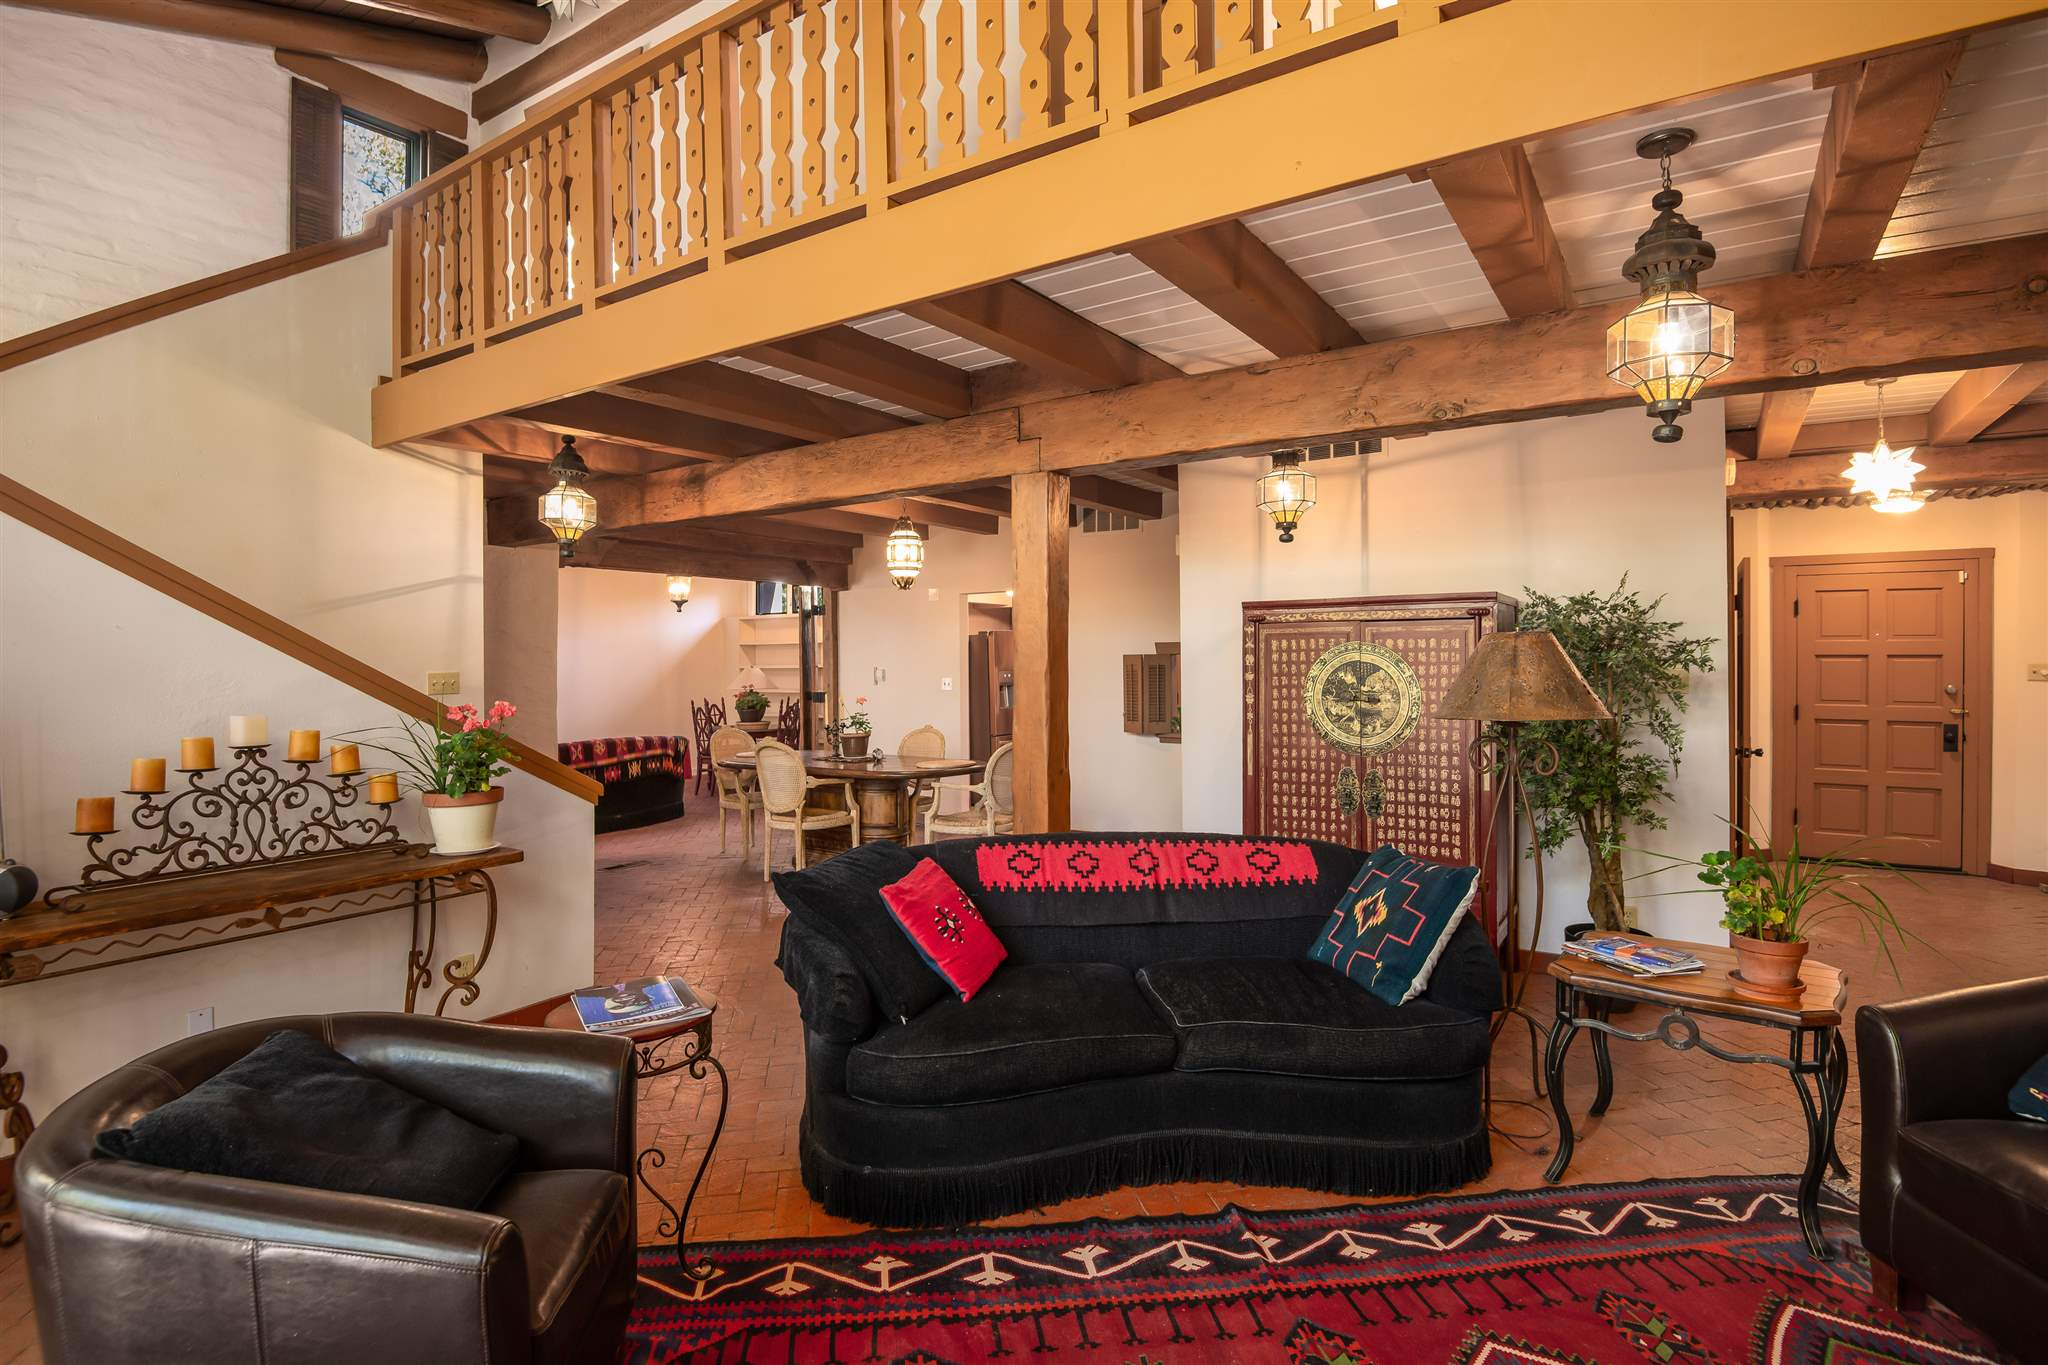 Elegant, private condo now available in La Patria compound, designed by John Midyette and is walking distance to Santa Fe plaza, shops and restaurants. The ambiance of the main level is detailed in Santa Fe Style with interior white-washed adobe brick walls, a kiva fireplace, brick floors and high ceilings with wooden beams. Special to this unit is a large, bonus family room, studio or office.  There's also a full dining room, and powder room on the main level, in addition to an inviting kitchen.  The two-story residence provides privacy for the 2 bedrooms suites upstairs. Enjoy 2,646 square feet of living space, a laundry room with storage with central heat and refrigerated air conditioning and a direct entry two-car garage. Enter through a walled and gated entry courtyard and relax in a shady rear portal with landscaped courtyard adjacent to open space.